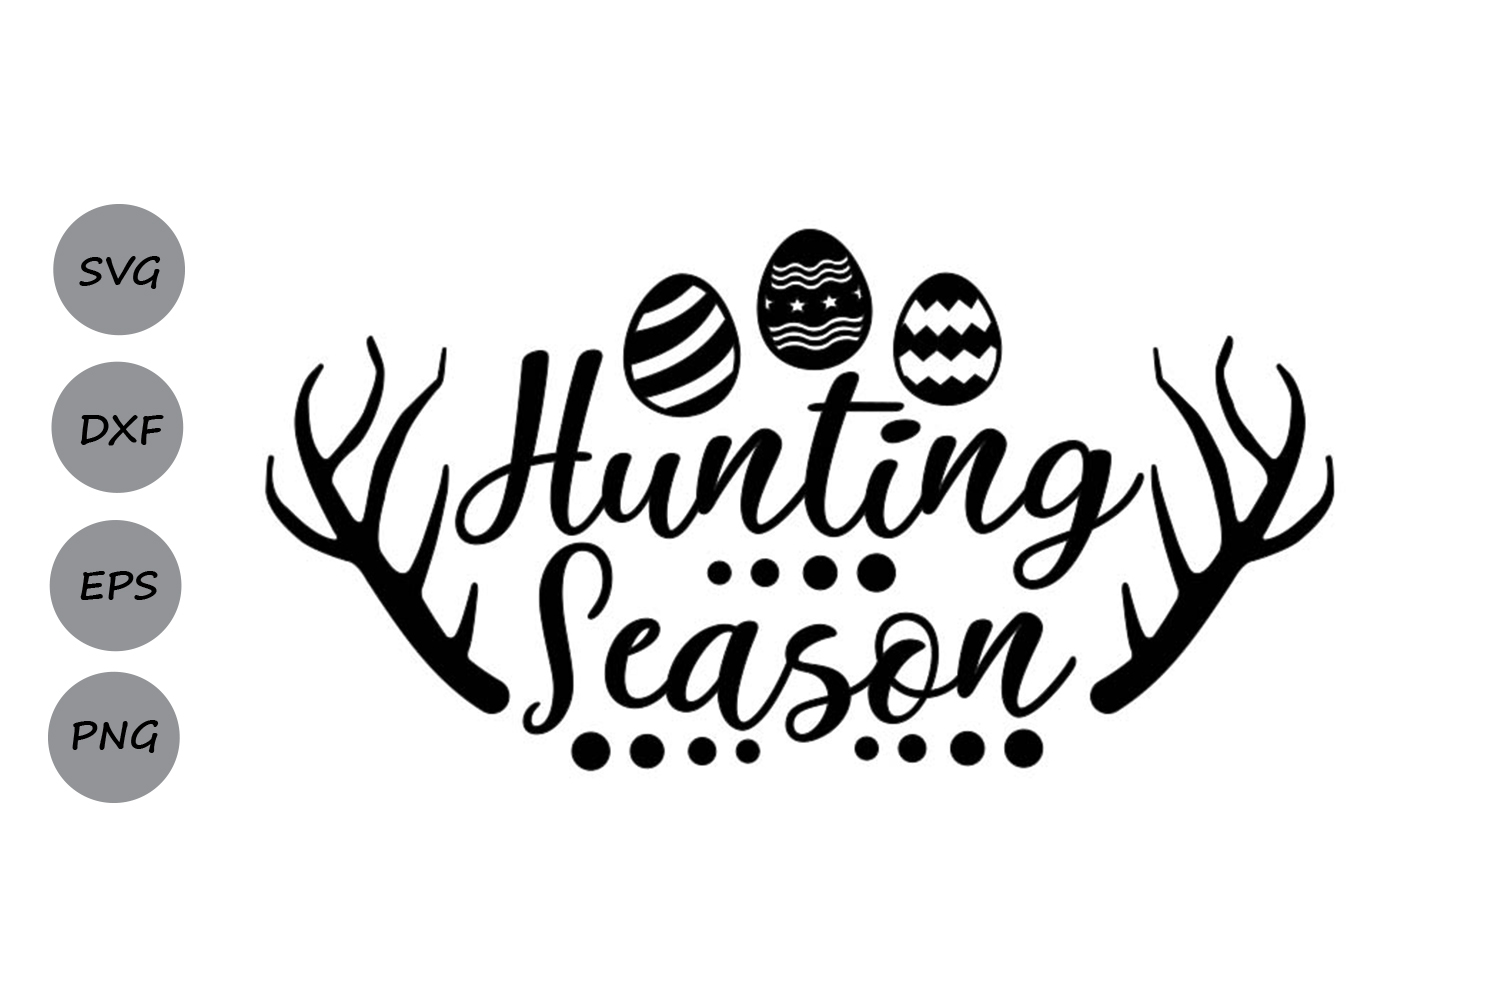 Hunting Season Svg, Easter Svg, Easter Eggs Svg, Spring Svg. example image 2